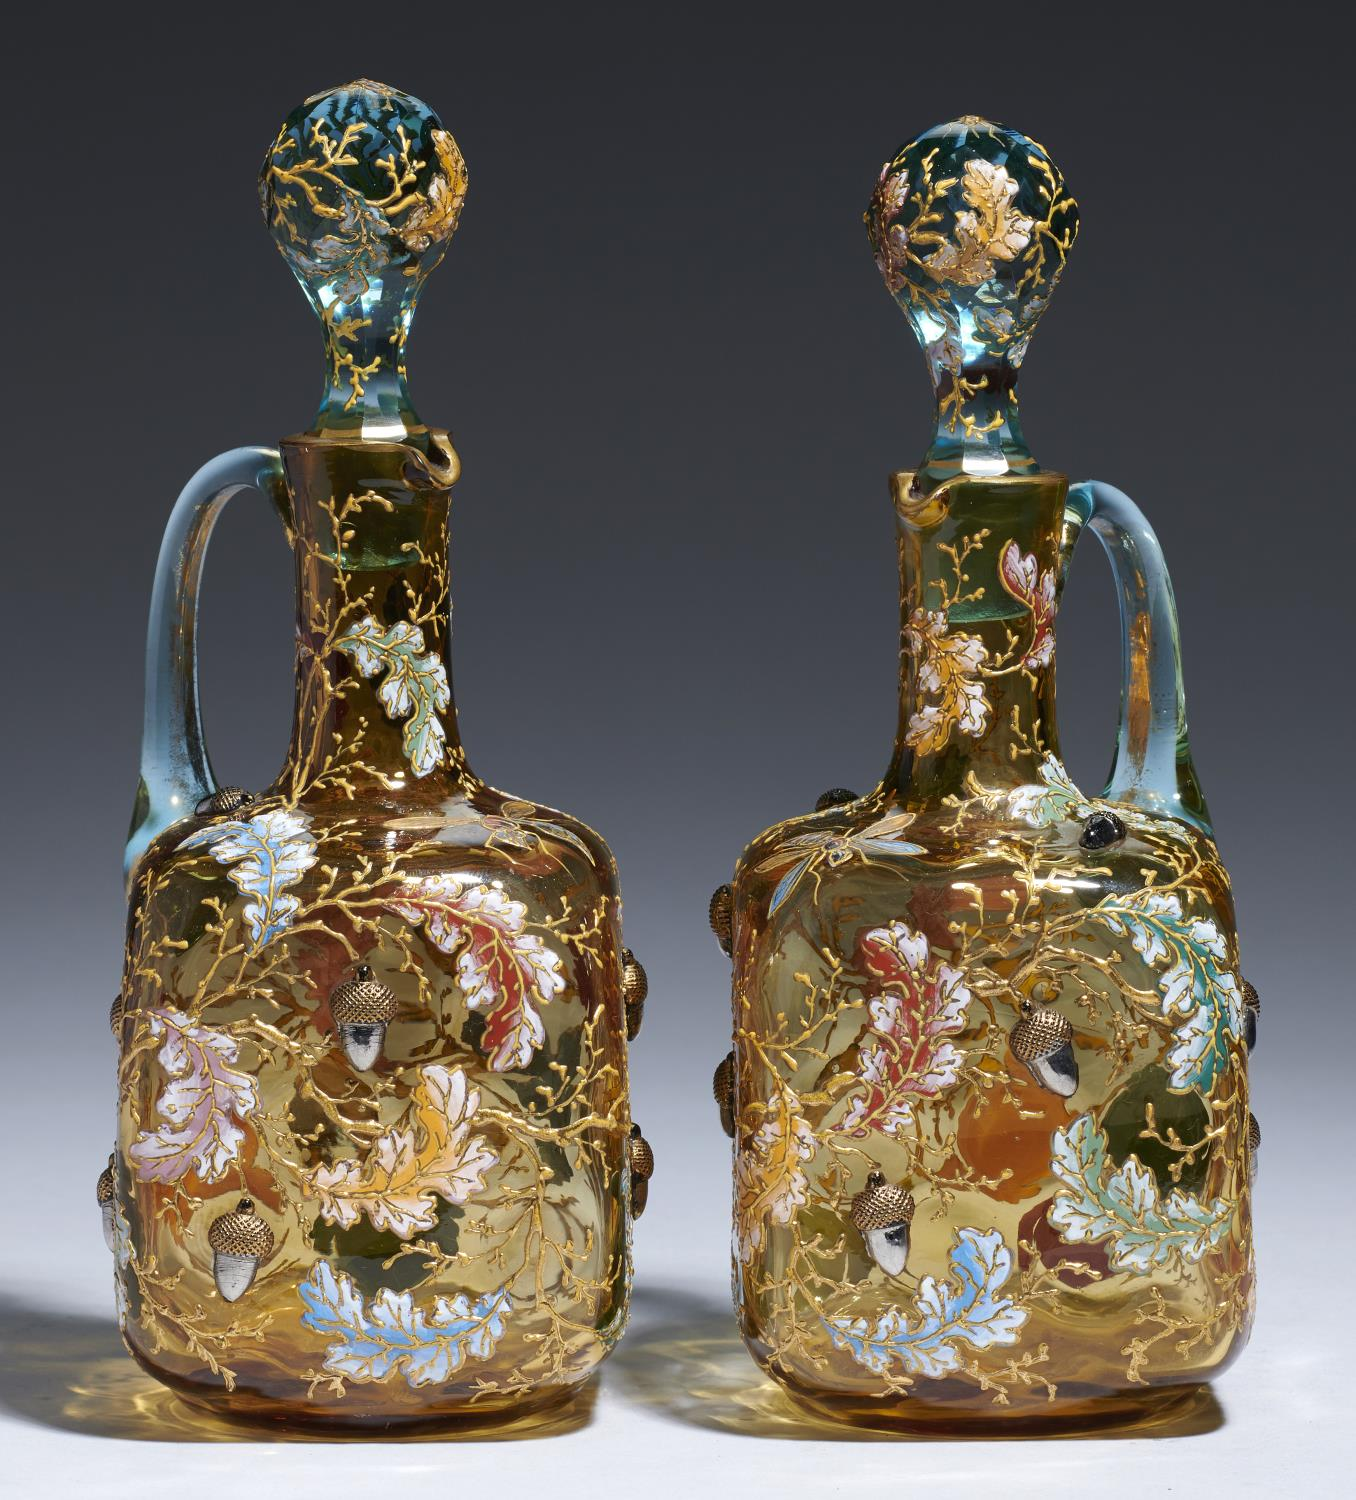 Lot 369A - A PAIR OF MOSER ENAMELLED AMBER AND KINGFISHER BLUE GLASS DECANTERS AND STOPPERS, C1900  applied